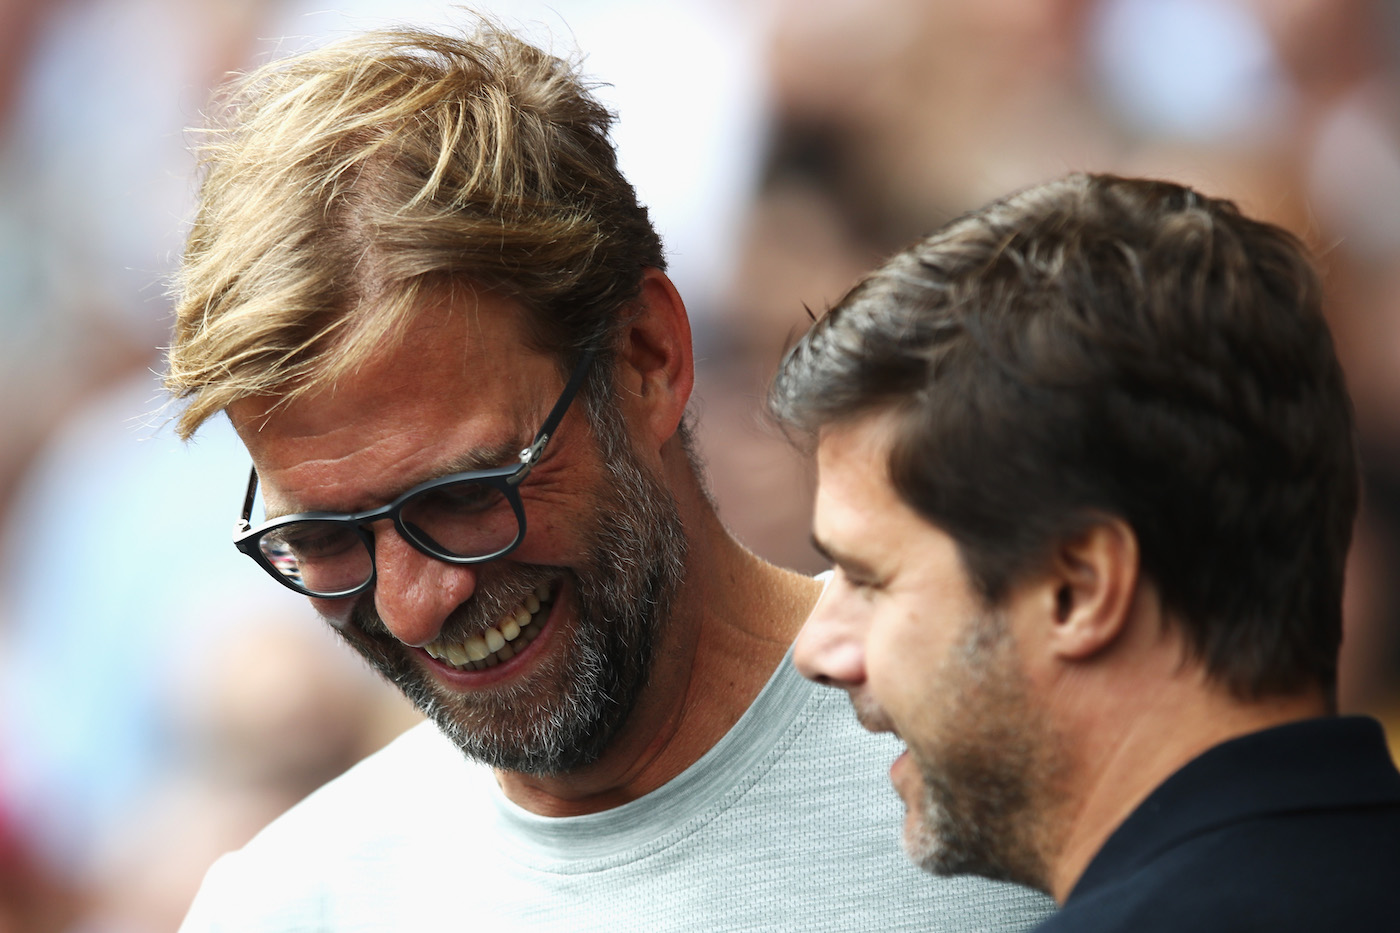 LONDON, ENGLAND - AUGUST 27: Jurgen Klopp, Manager of Liverpool (L) shares a smile with Mauricio Pochettino, Manager of Tottenham Hotspur (R) during the Premier League match between Tottenham Hotspur and Liverpool at White Hart Lane on August 27, 2016 in London, England. (Photo by Julian Finney/Getty Images)